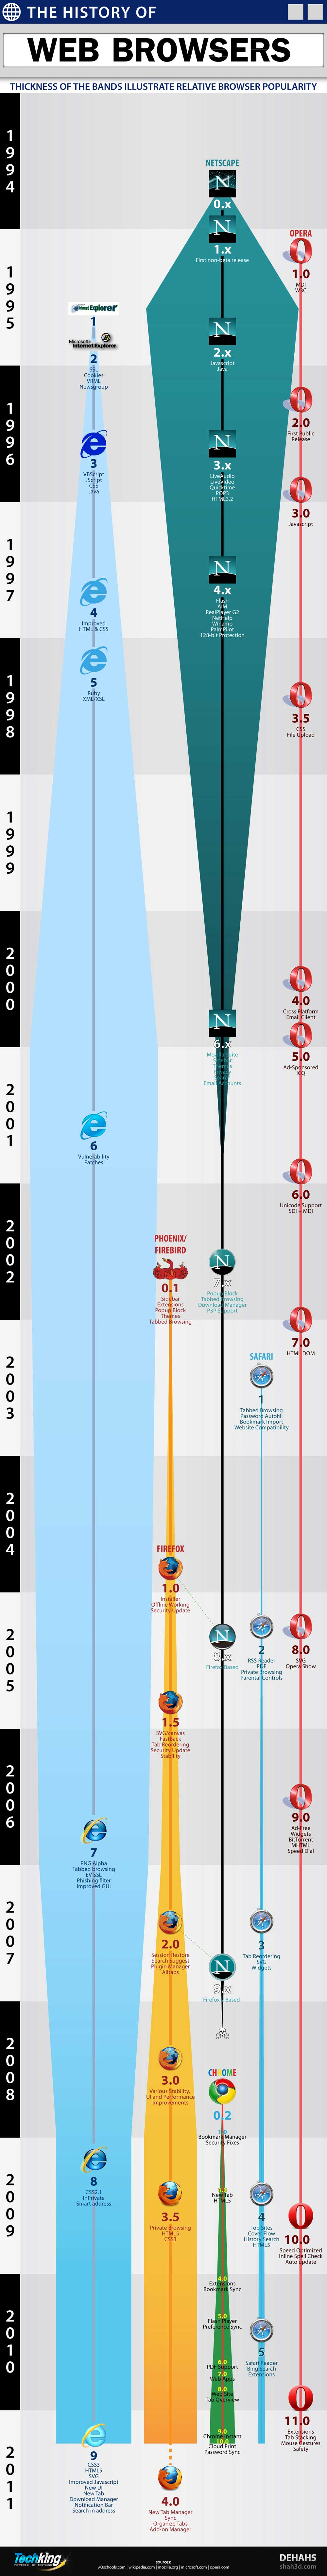 The-History-Of-Web-Browsers-infographic